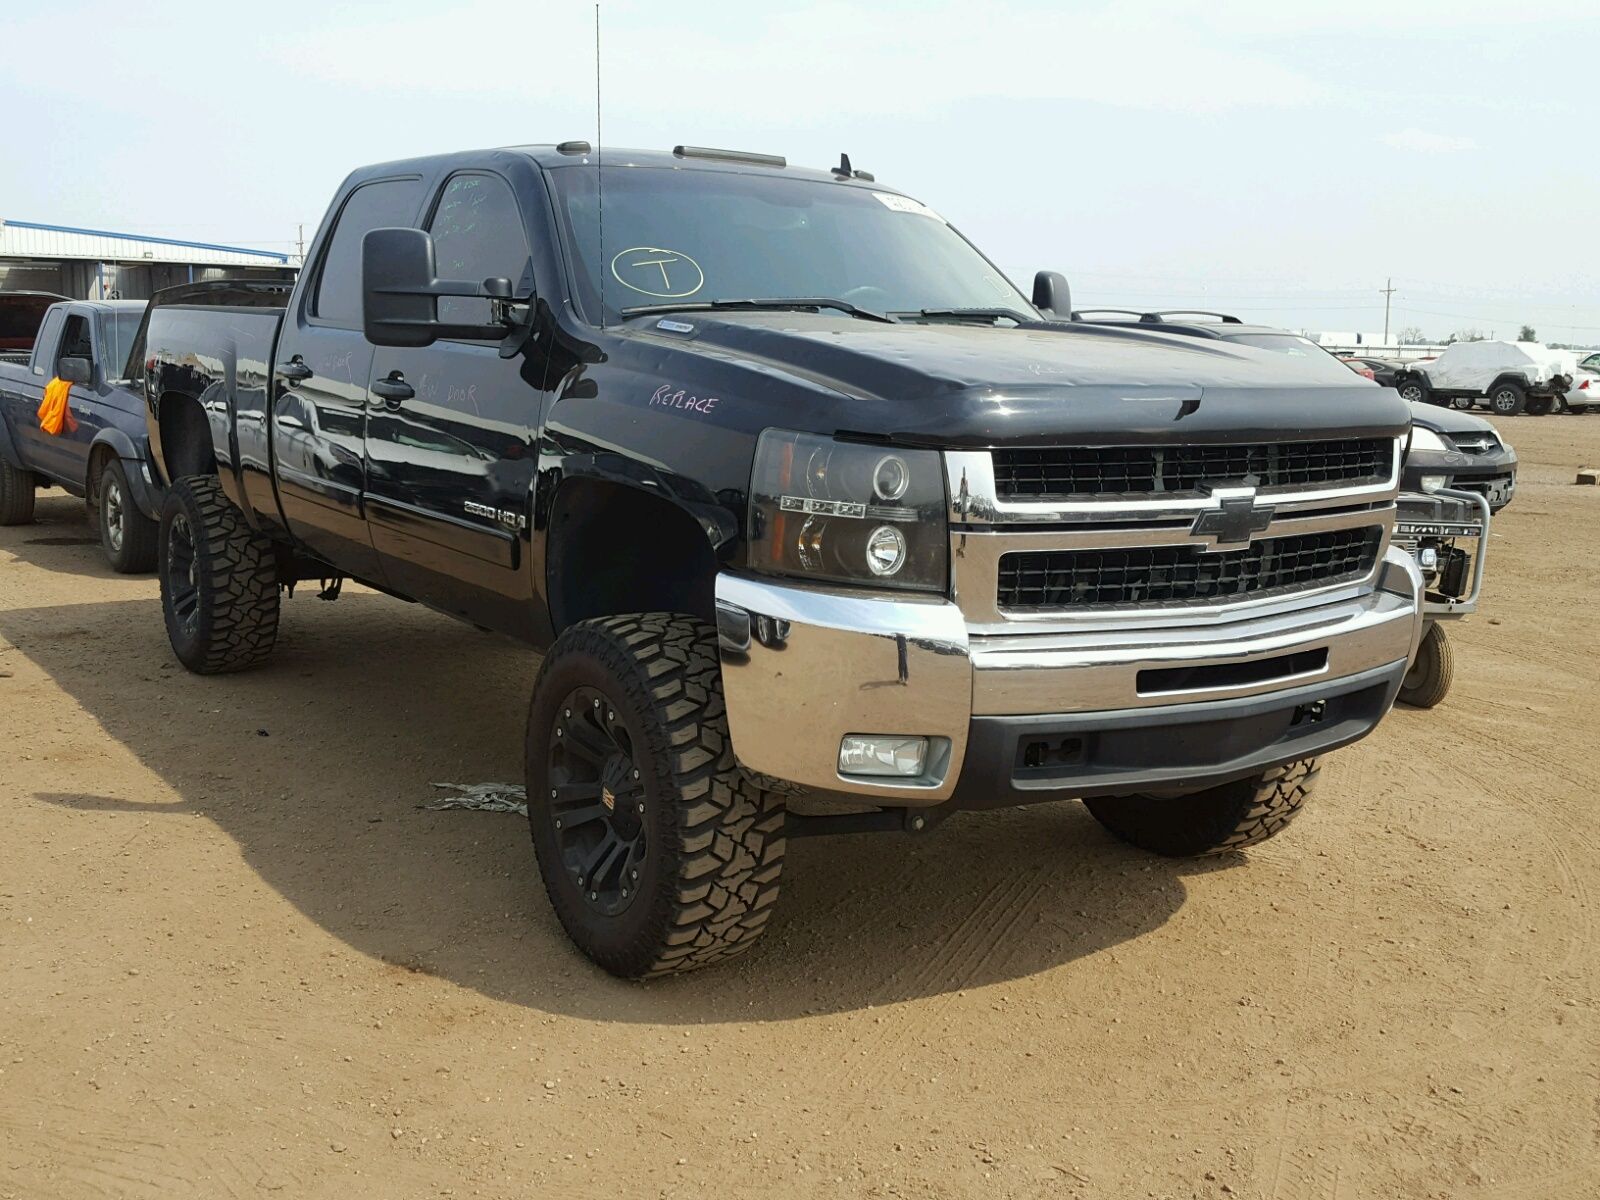 Salvage 2007 Chevrolet SILVERADO for sale